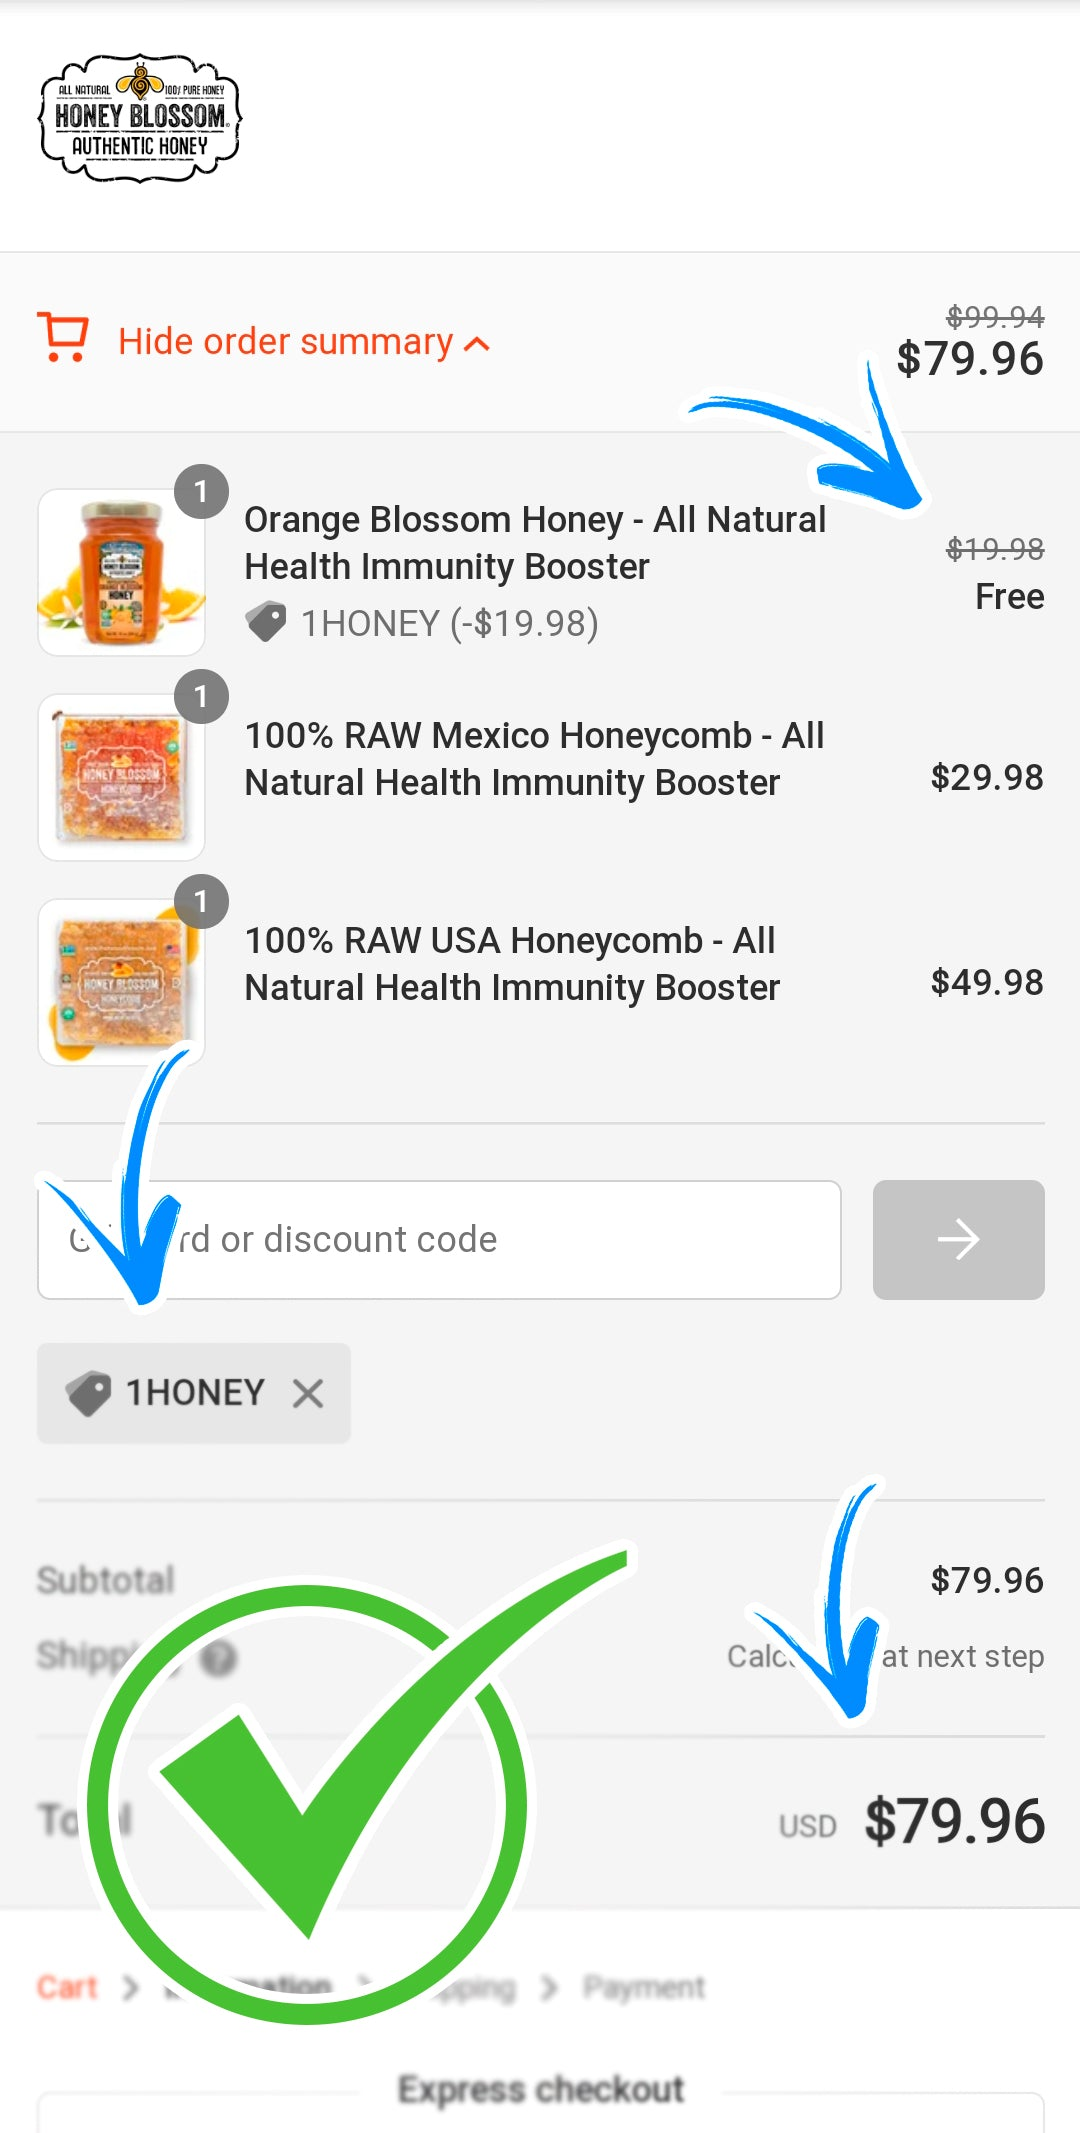 Screenshot of the mobile payment page showing that the promo code was successfully applied.